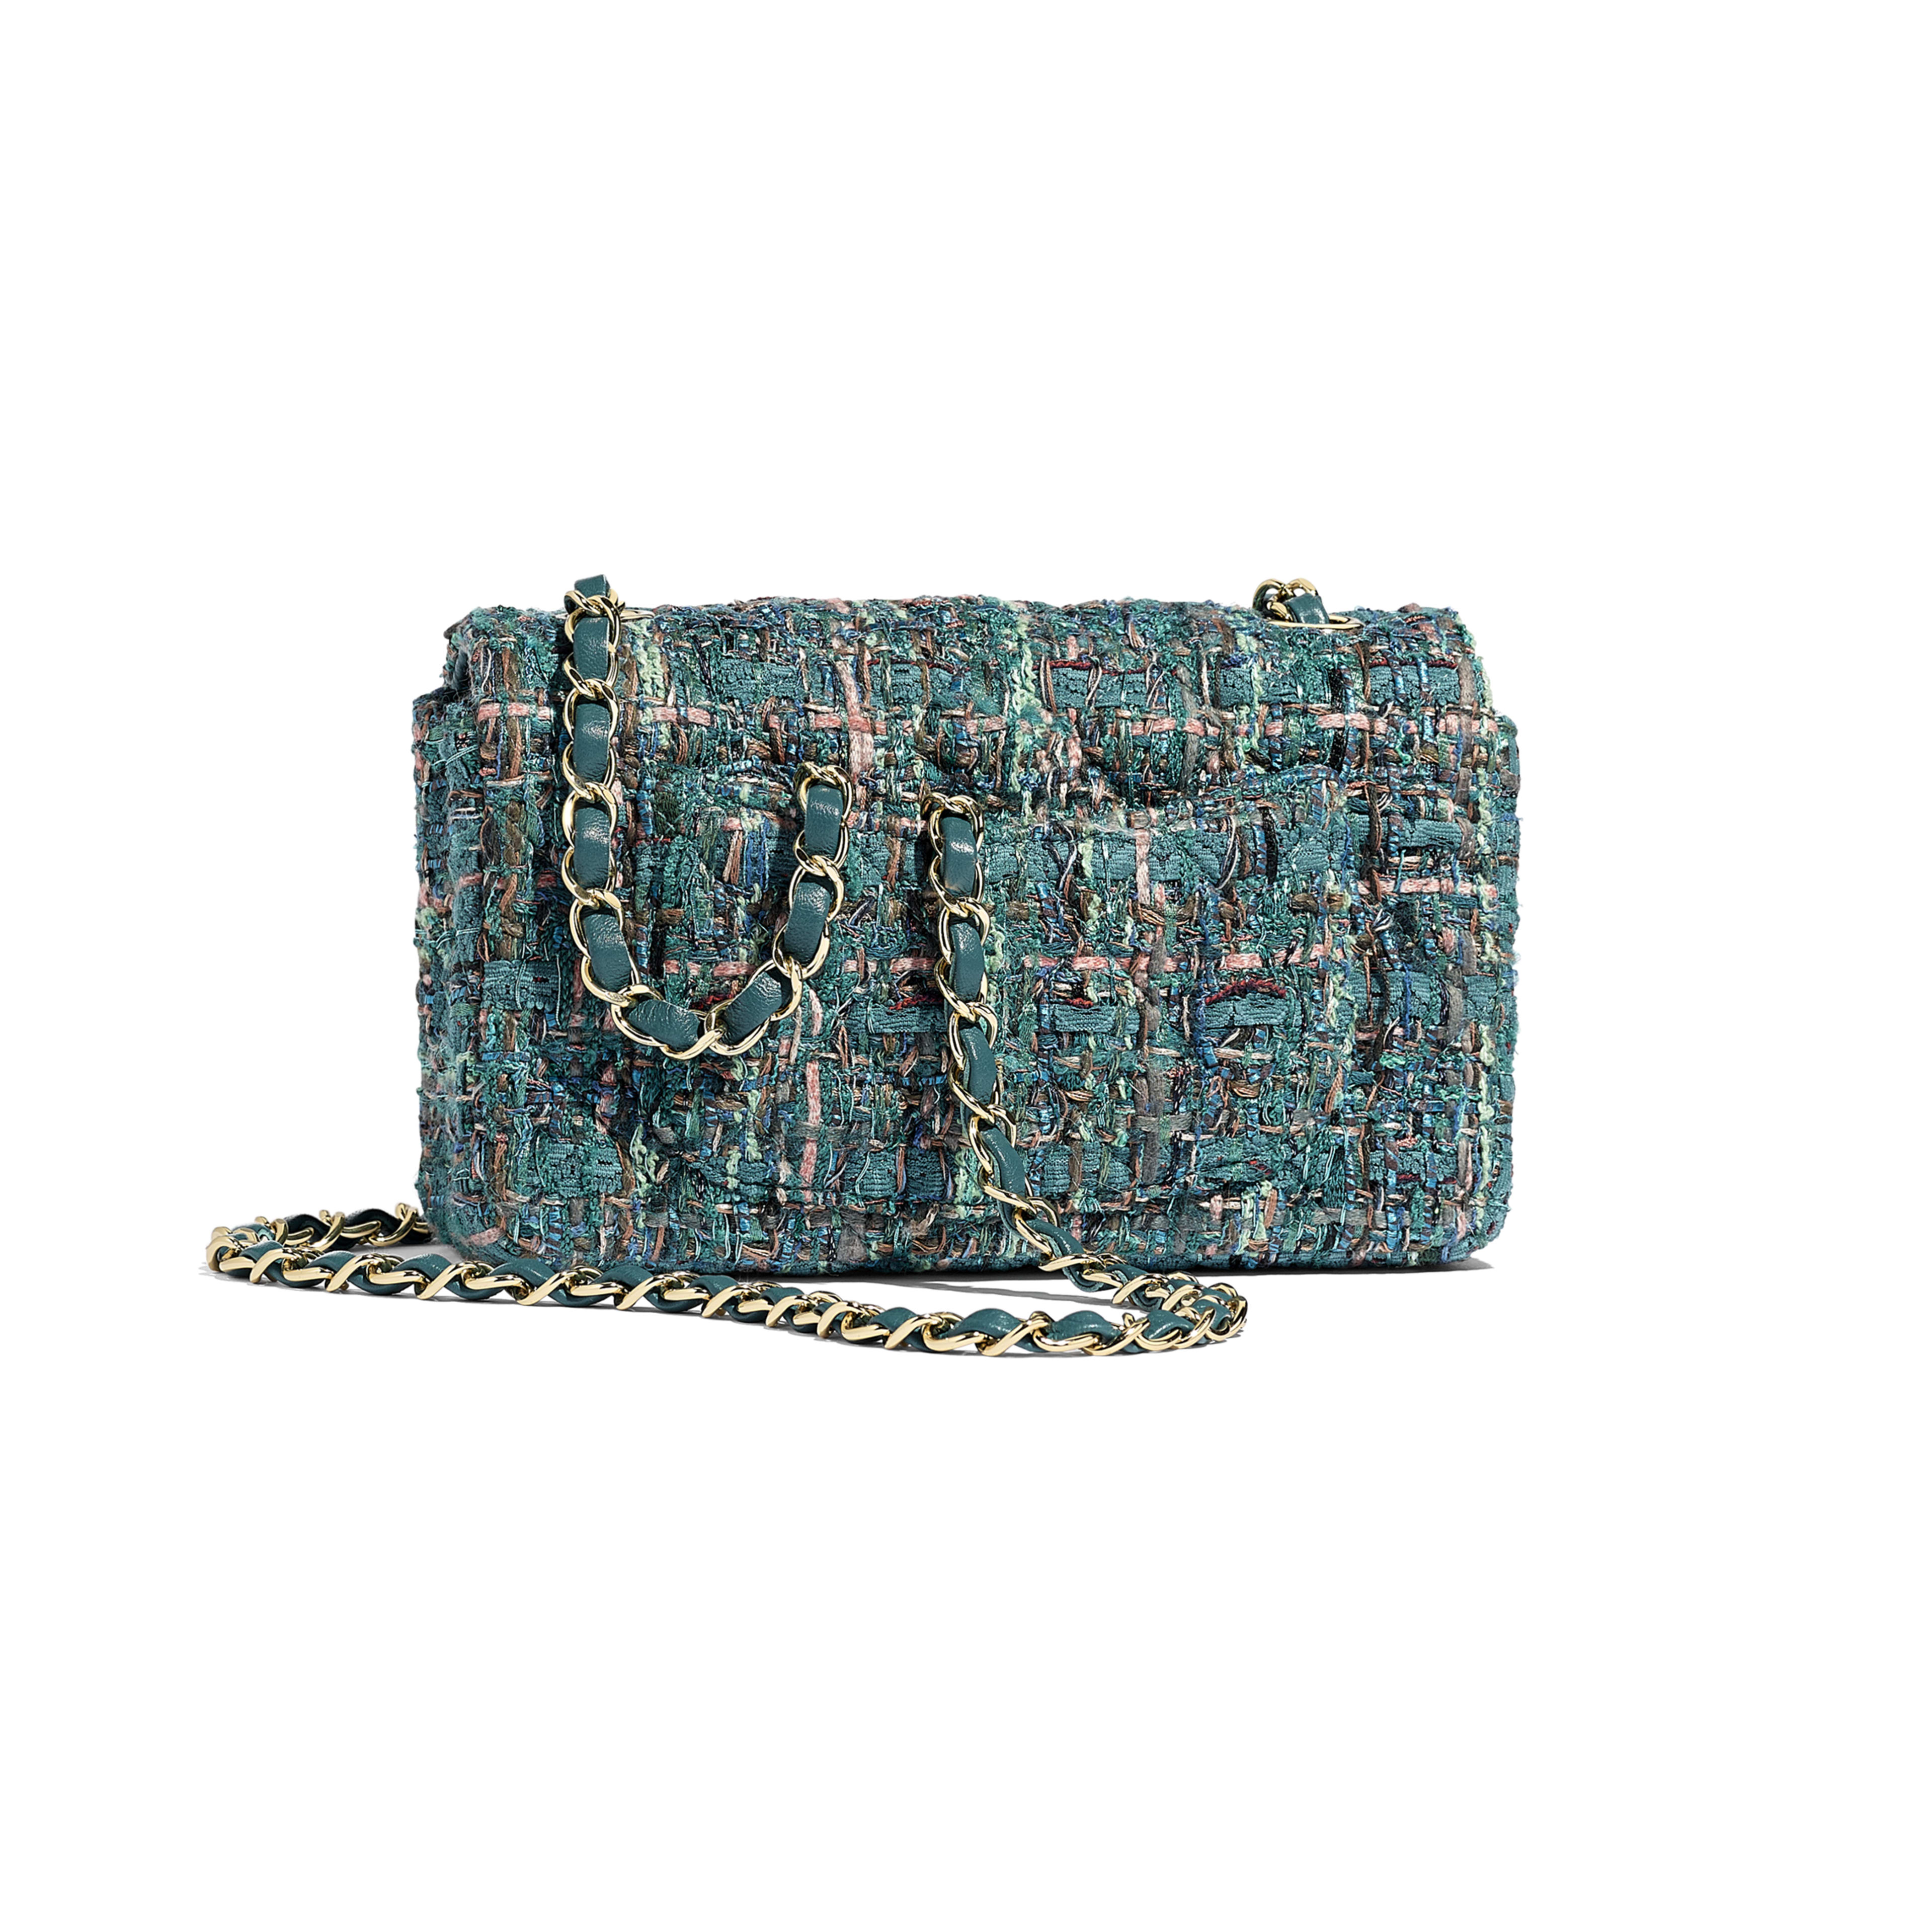 Mini Flap Bag - Turquoise - Tweed & Gold-Tone Metal - Alternative view - see full sized version